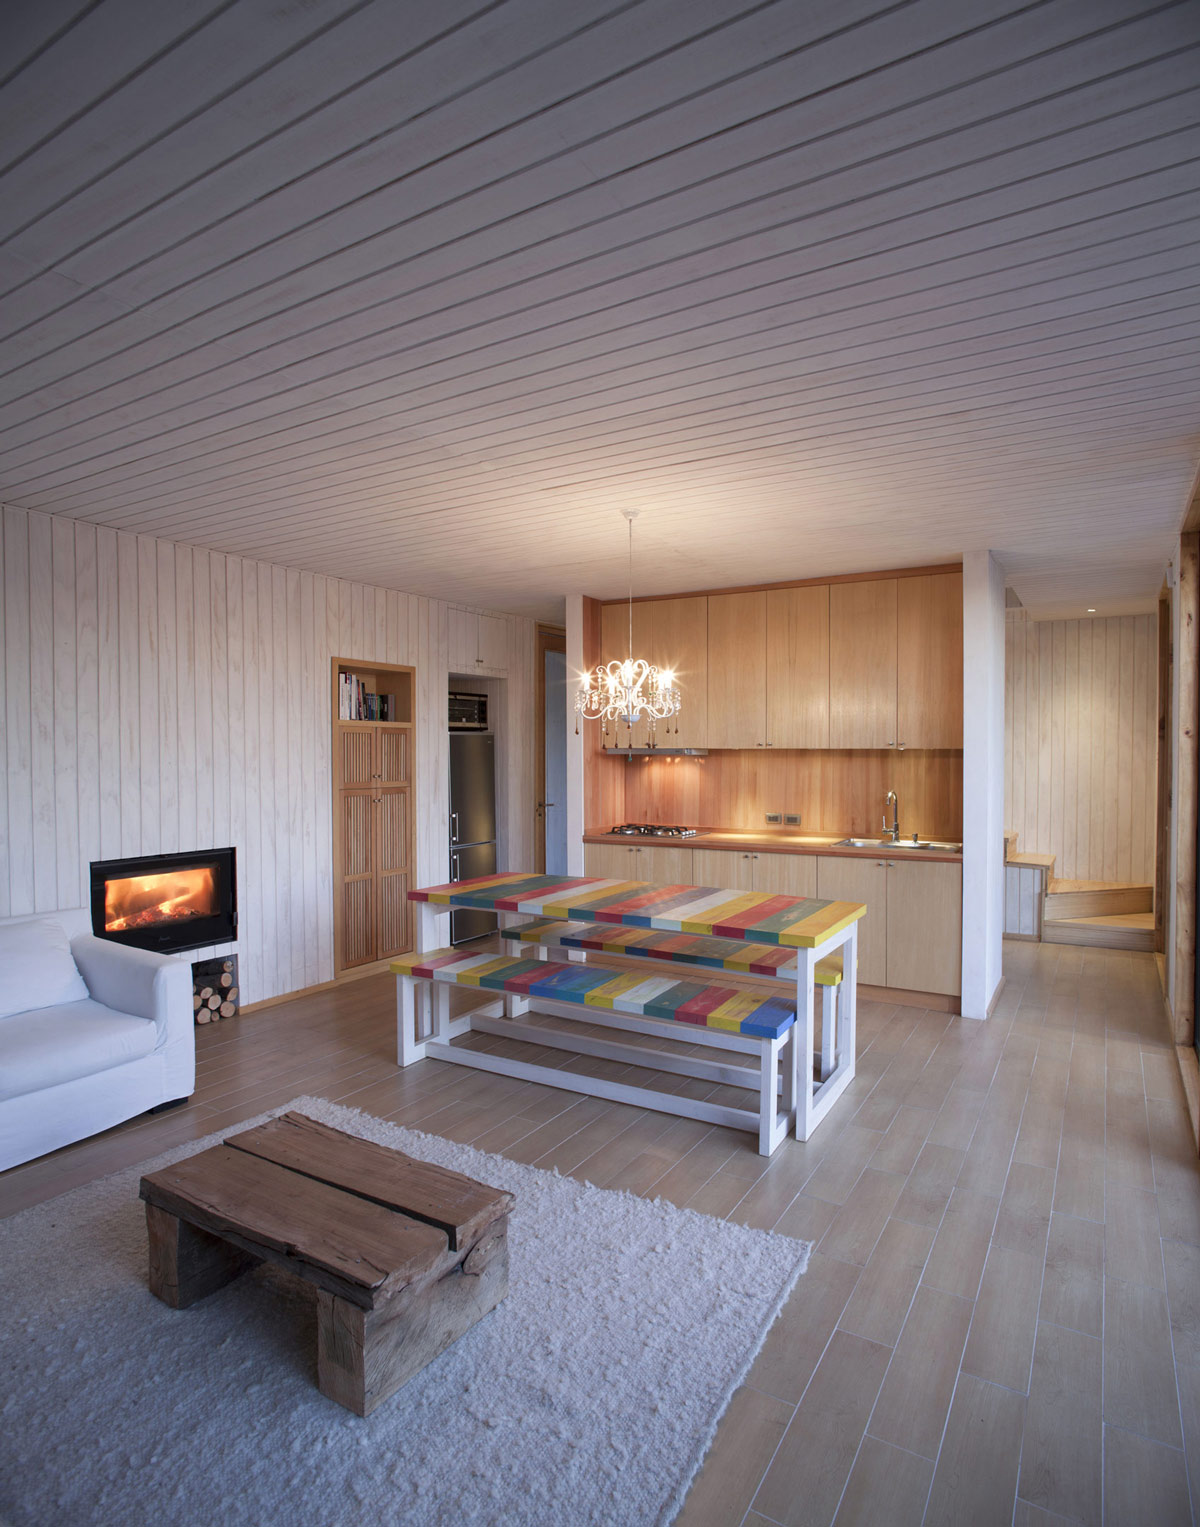 Kitchen, Dining & Living Space, Fireplace, Family Home in Algarrobo, Chile